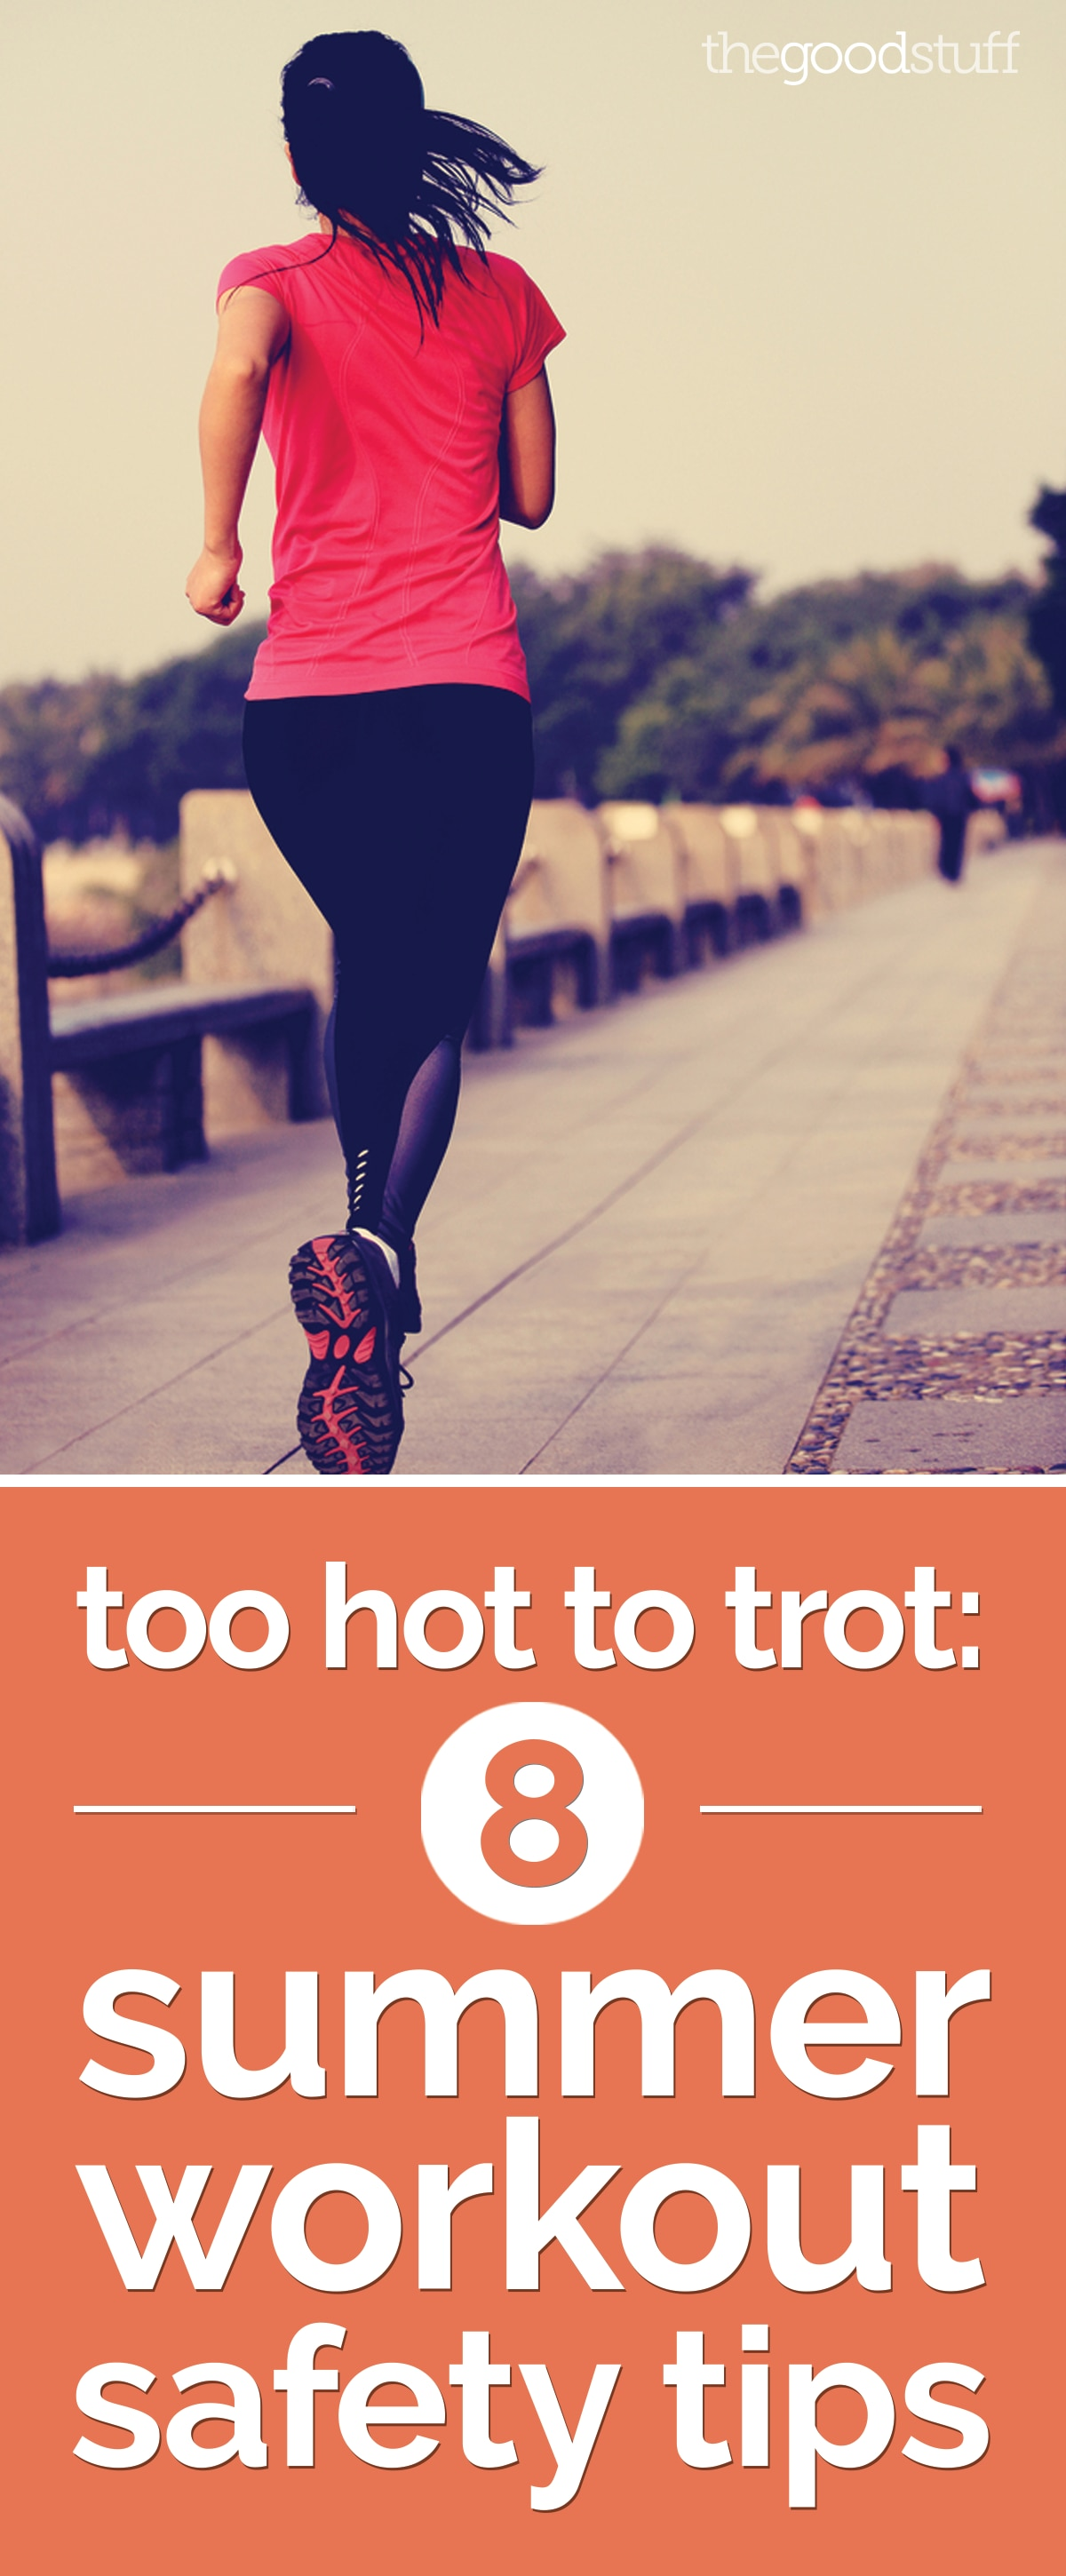 Too Hot to Trot: 8 Summer Workout Safety Tips | thegoodstuff